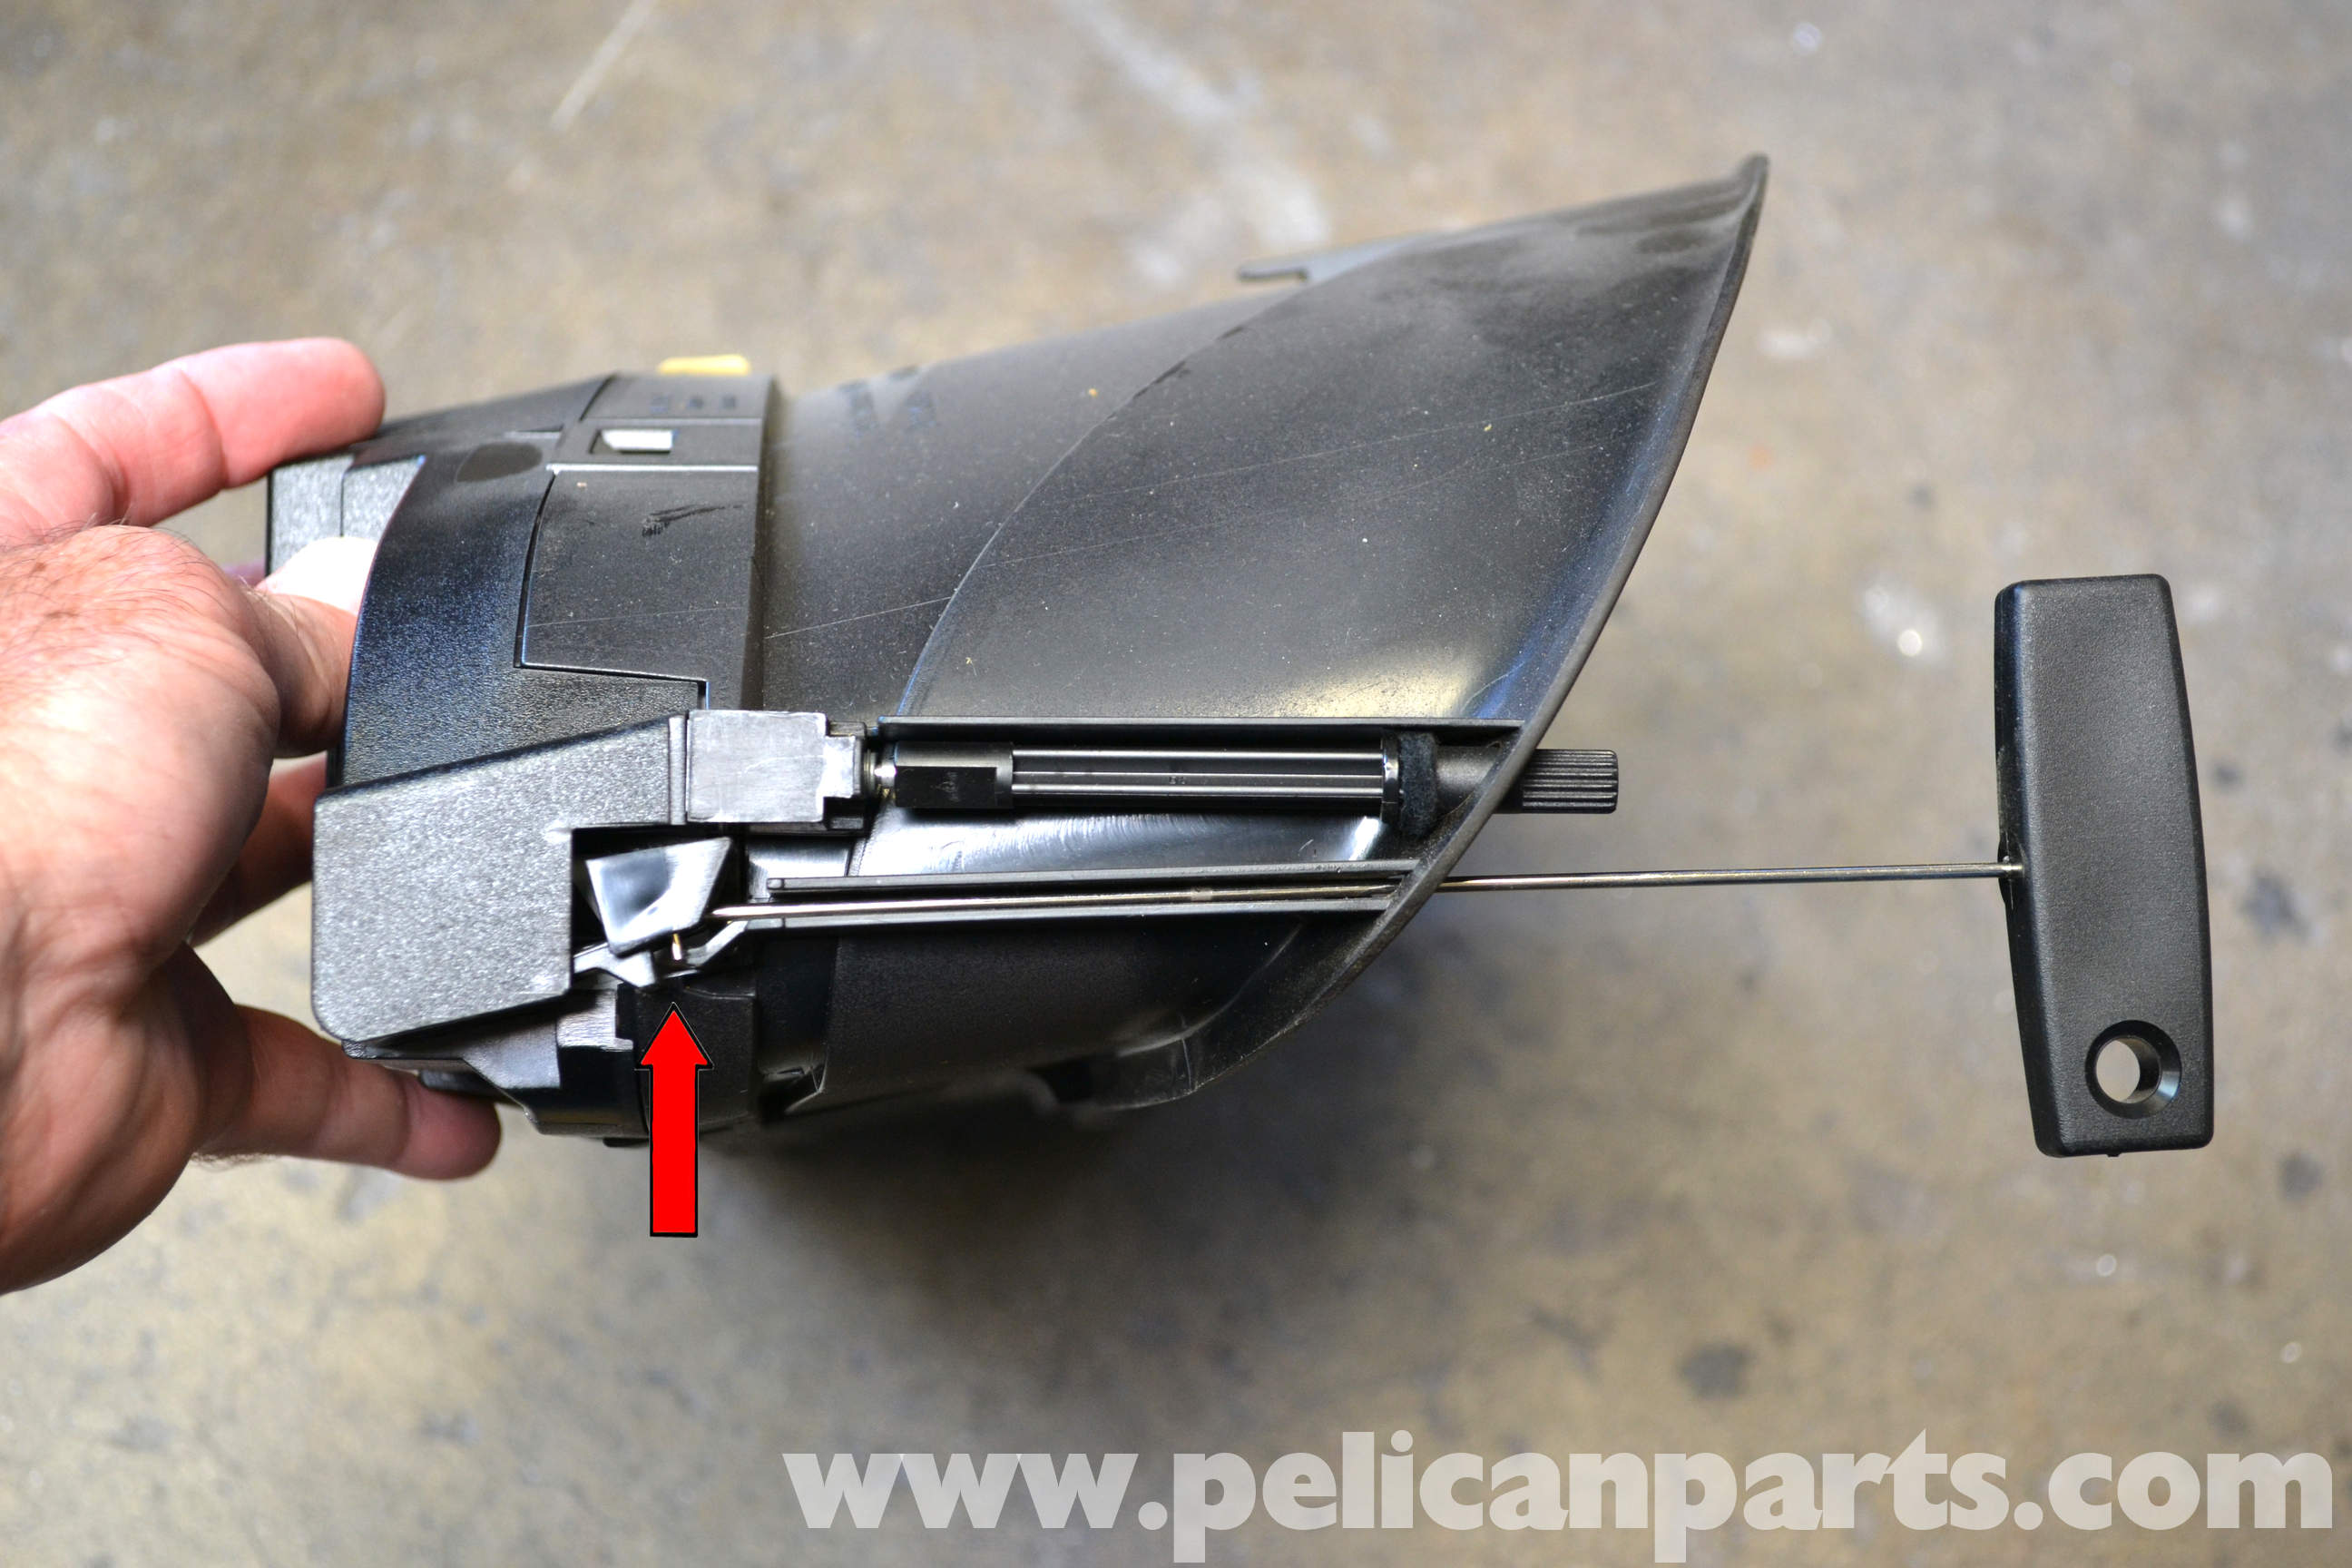 Mercedes benz w203 instrument cluster removal 2001 2007 for Mercedes benz tools